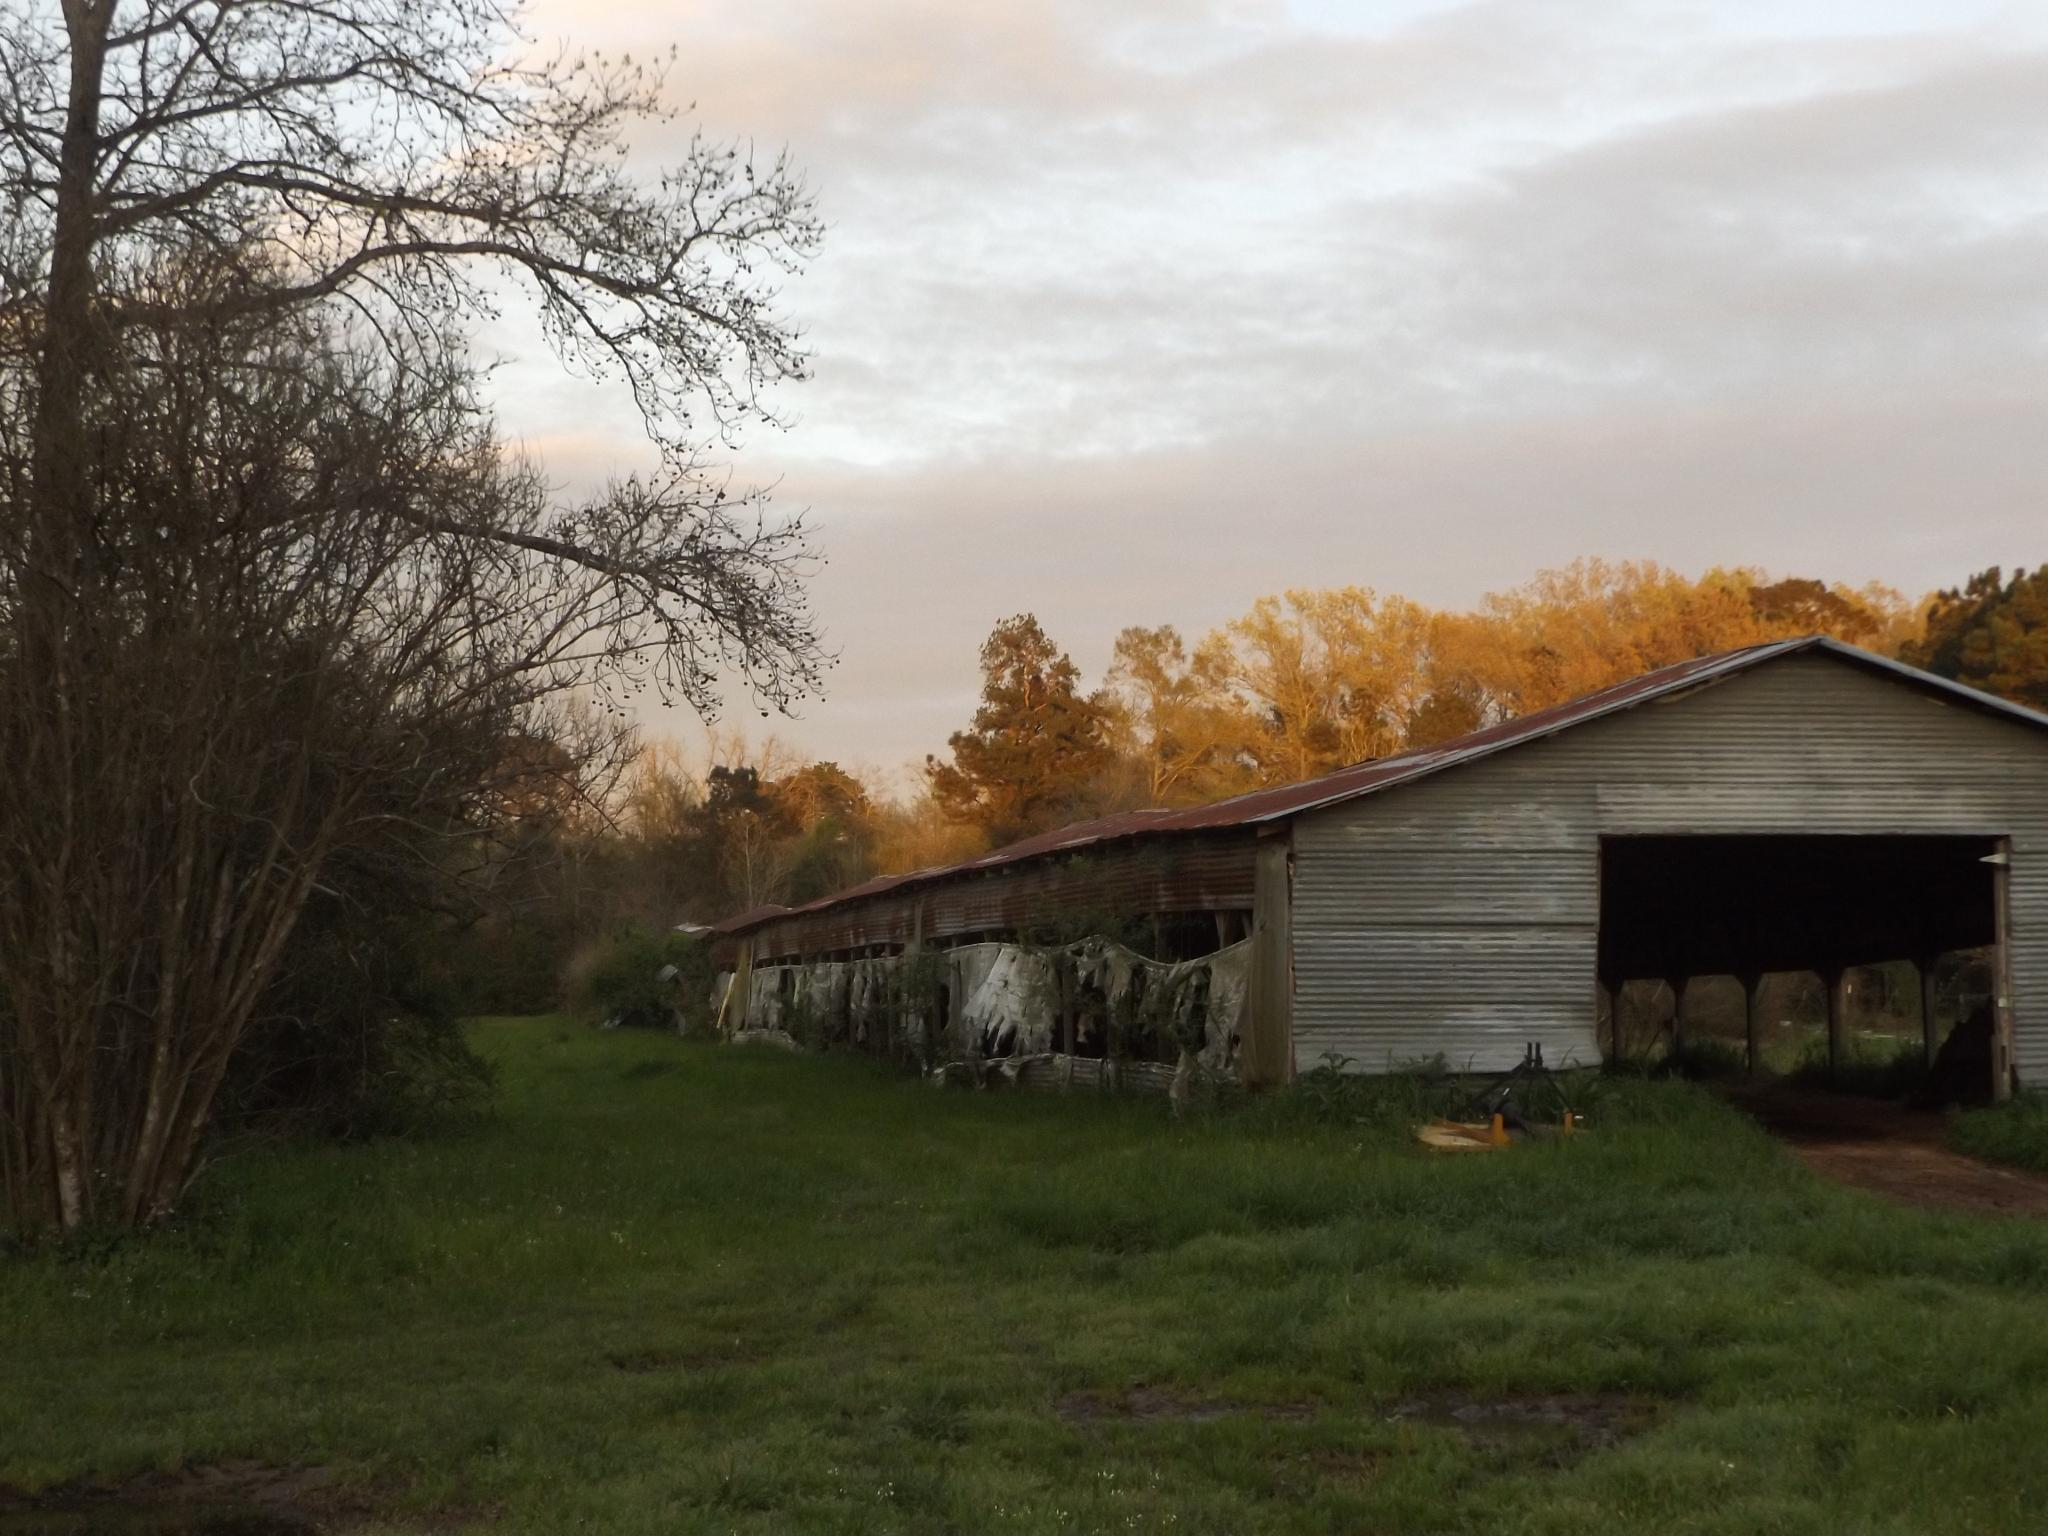 Old Chicken Shed  by sherrie.lowery